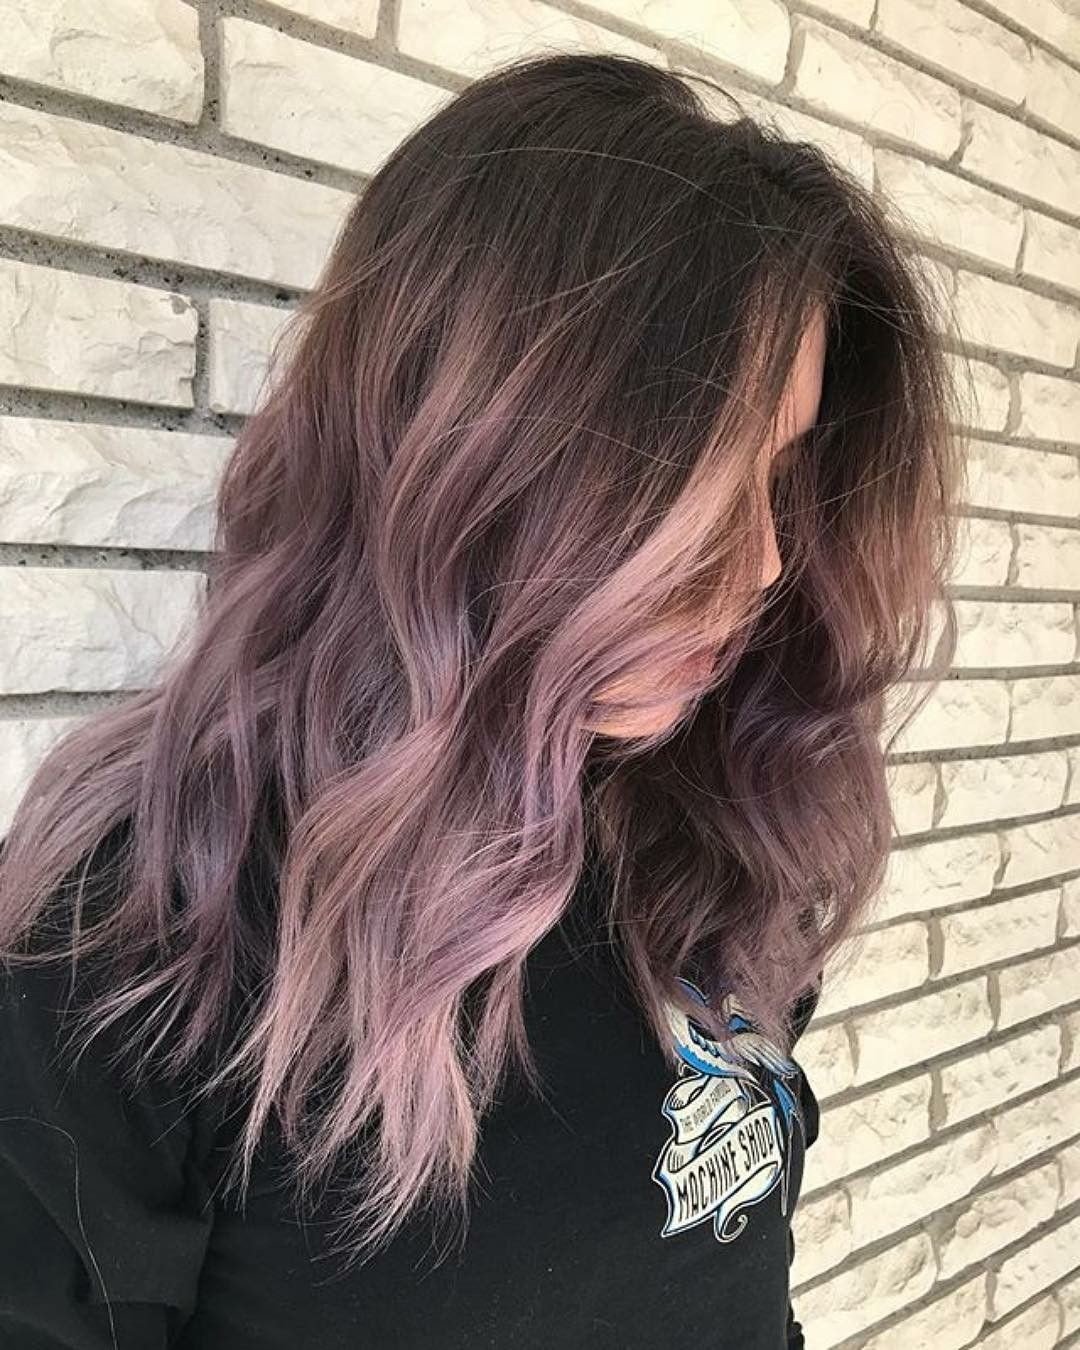 Subtle fade hair pinterest hair coloring hair style and makeup